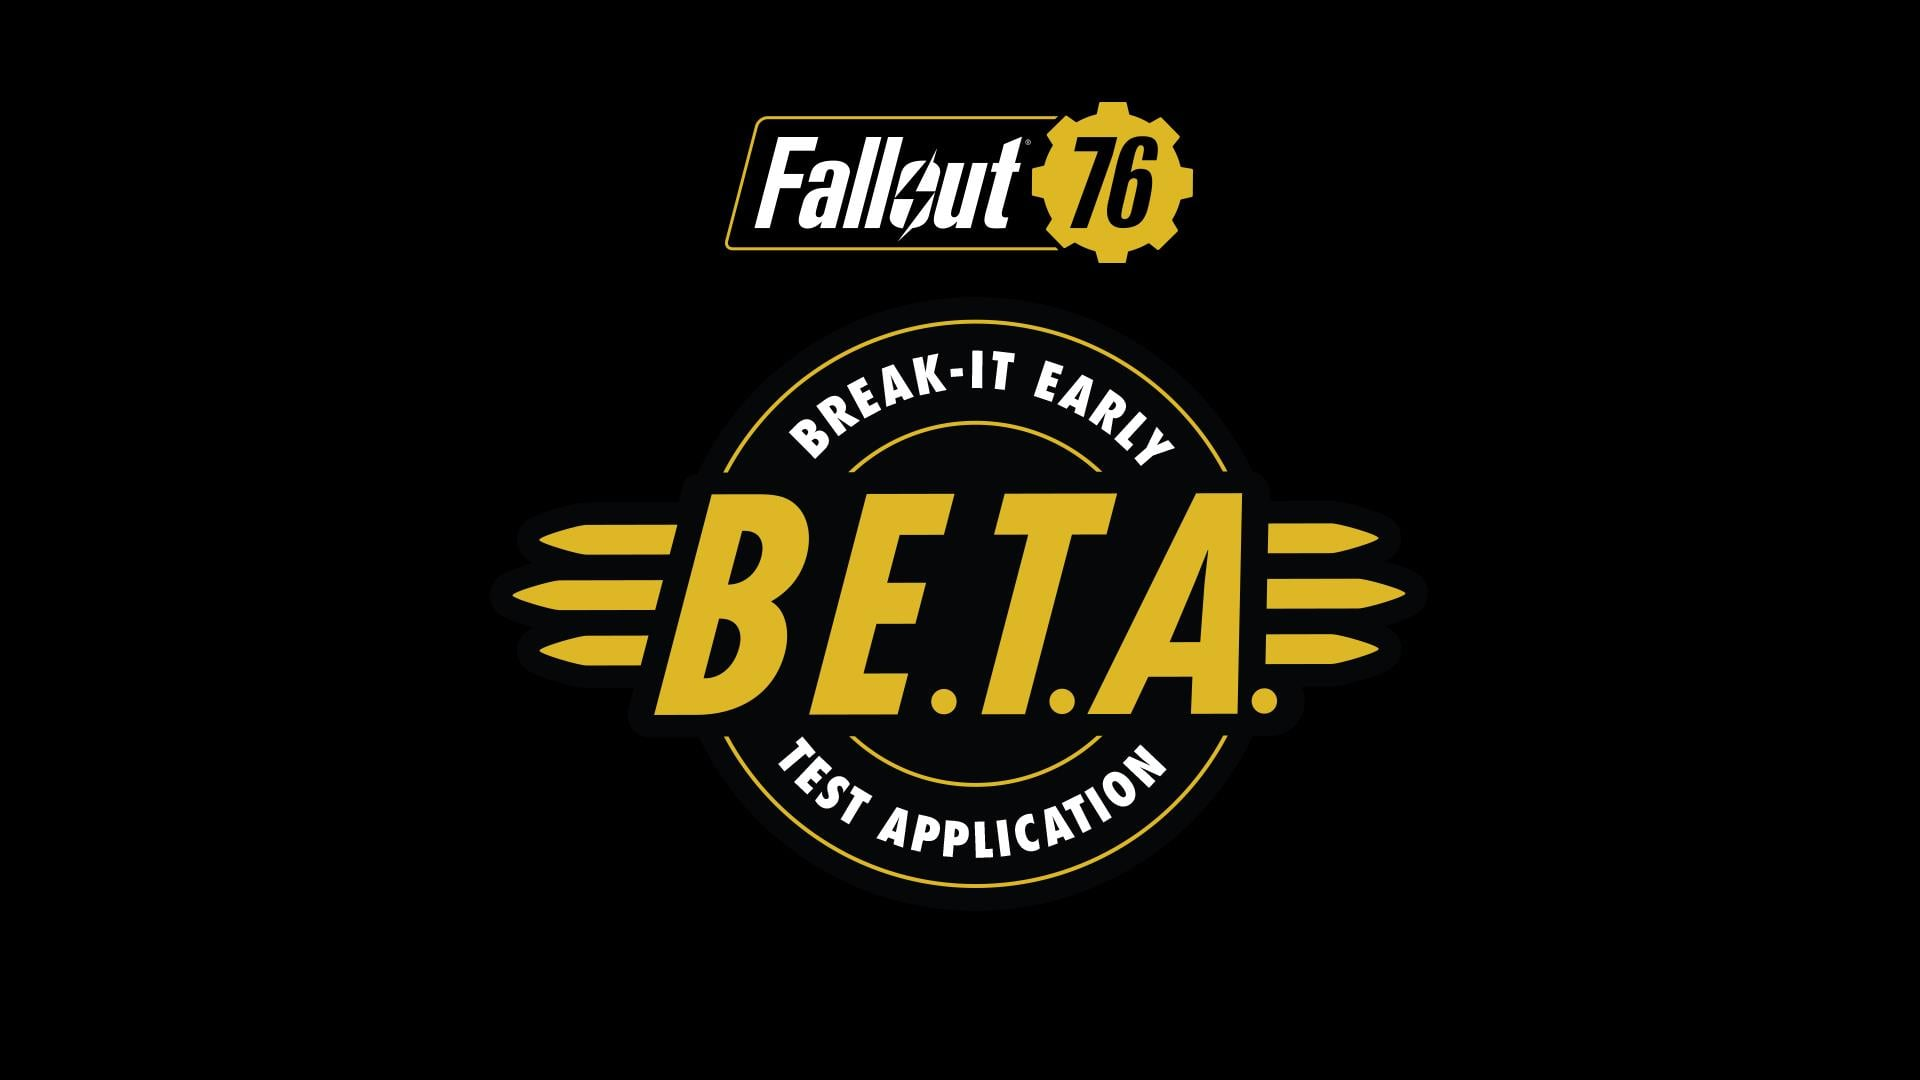 fallout 76 beta end date